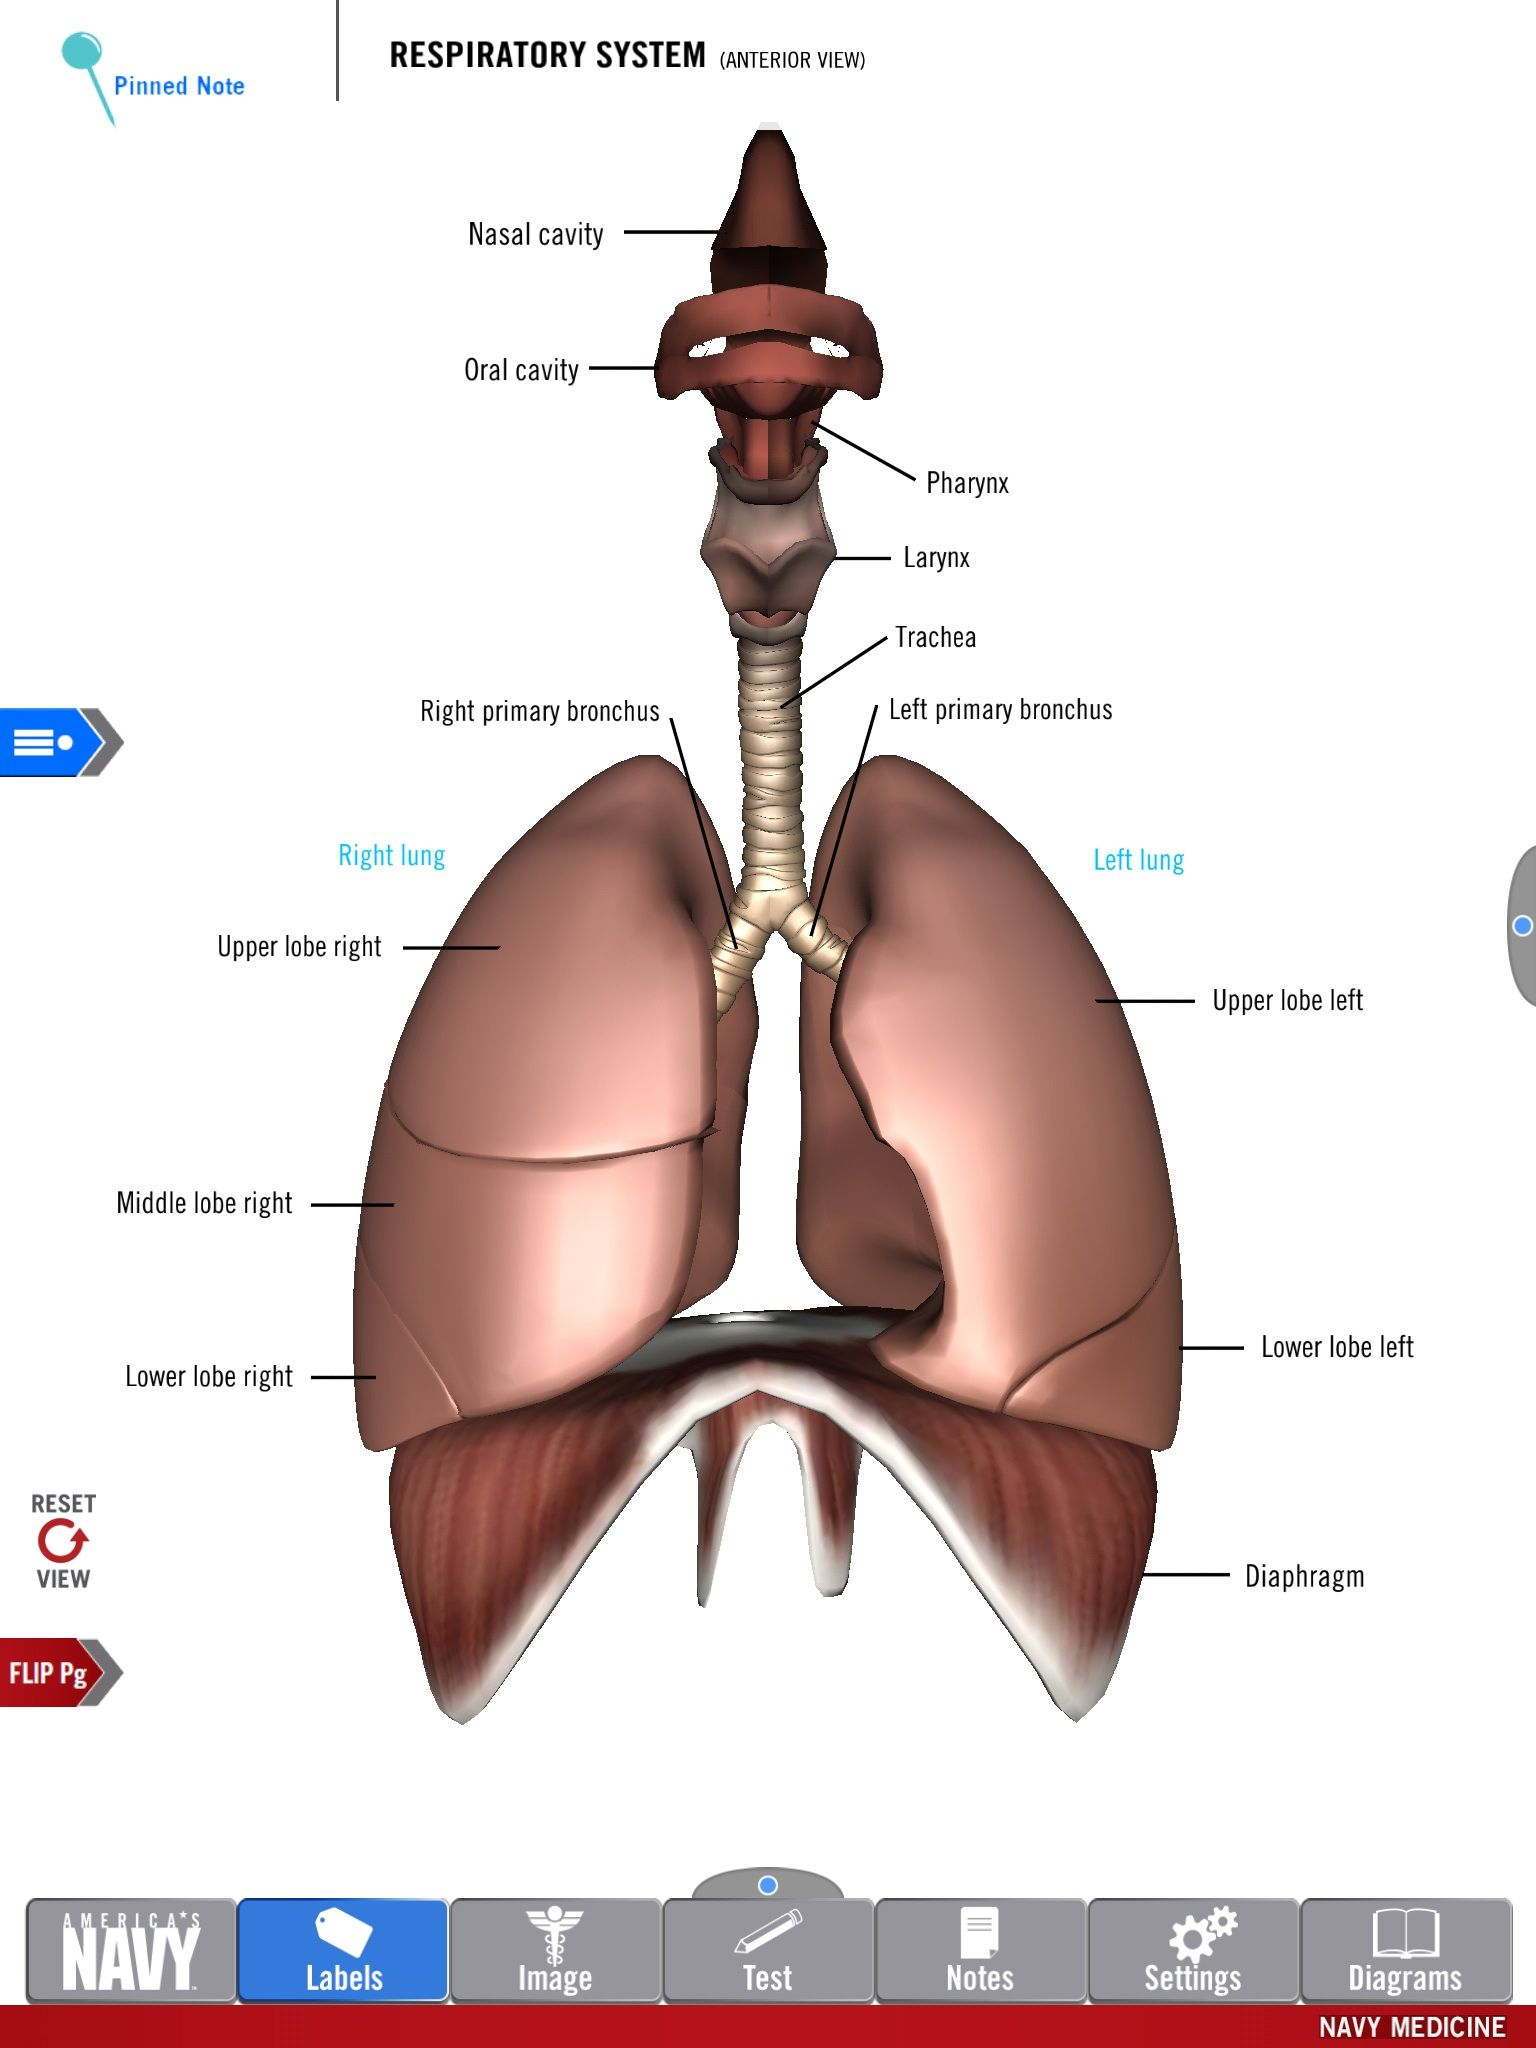 an analysis of the respiratory system American journal of respiratory and critical care medicine publishes the most innovative science and highest quality reviews, practice guidelines,.